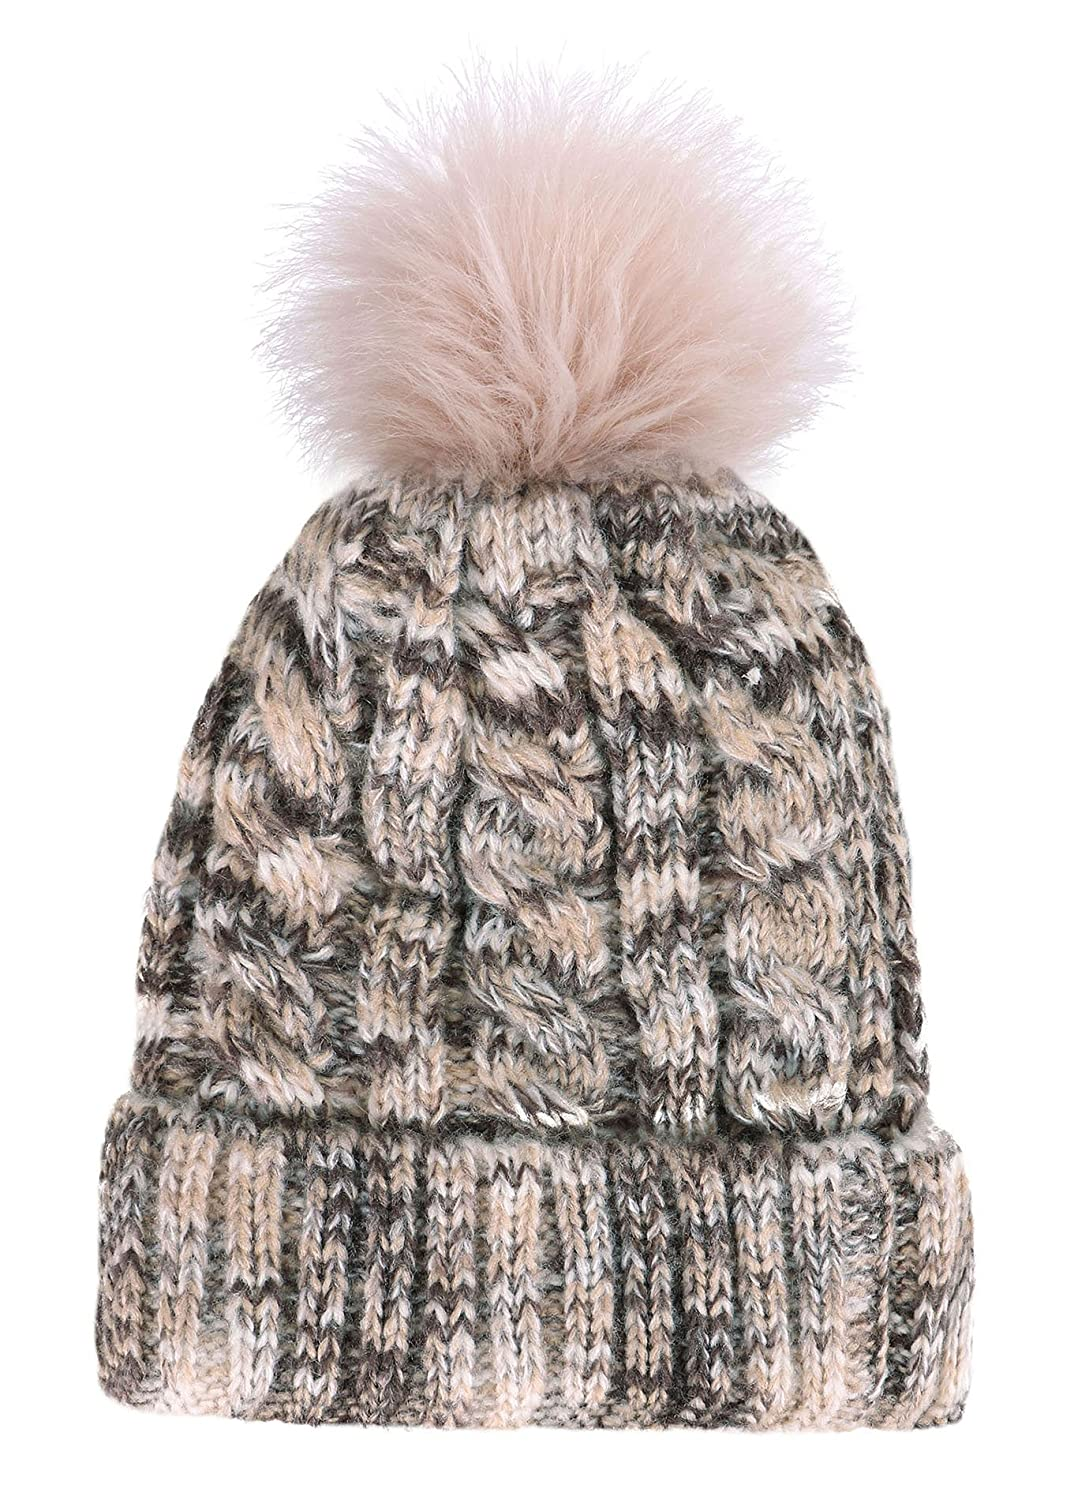 c4304d88d6e EPGU Women s Heathered Cable Knit Pom Pom Beanie Hat With Sherpa Lined